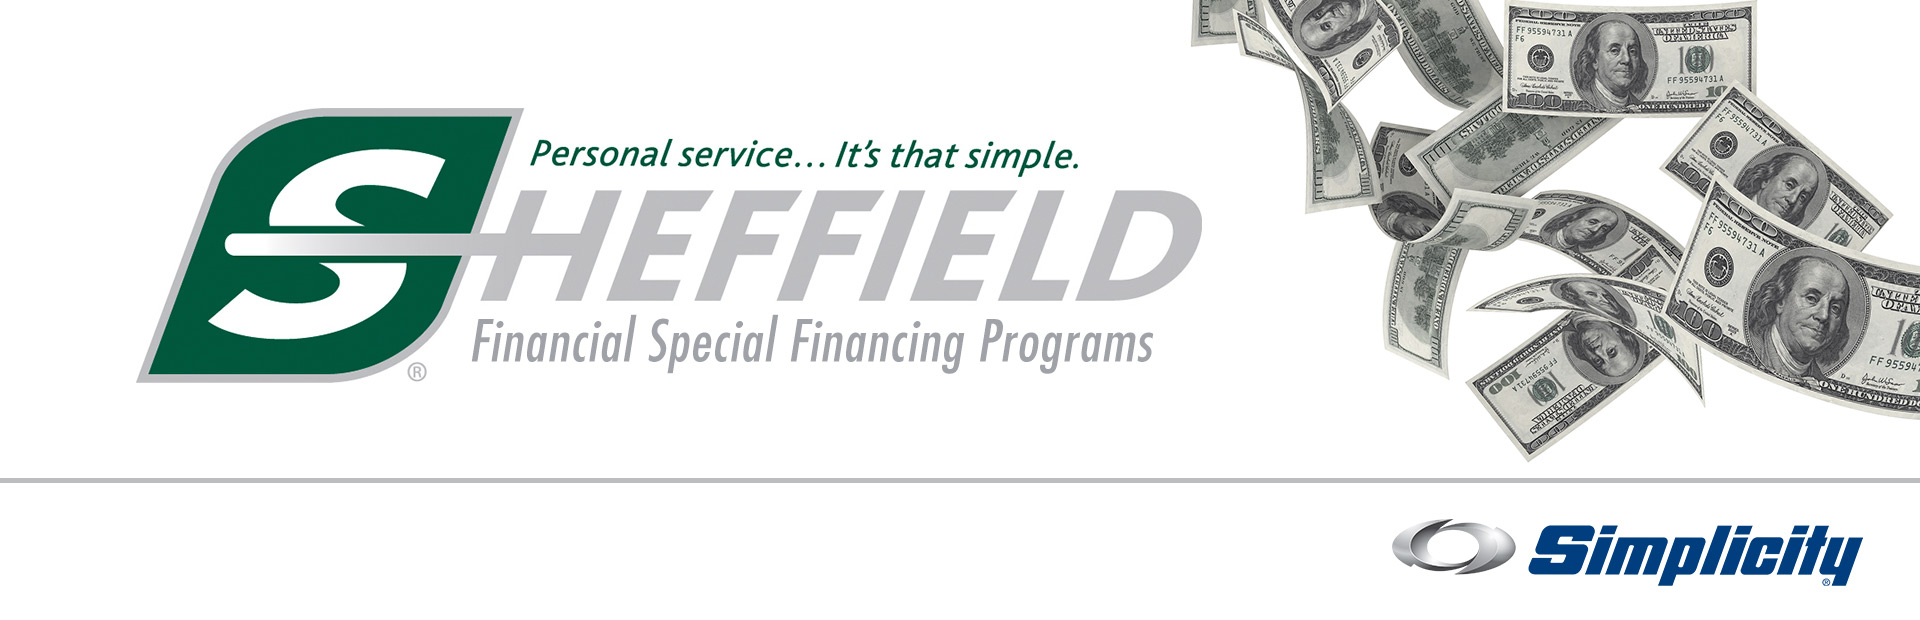 Simplicity: Sheffield Financial Special Financing Programs